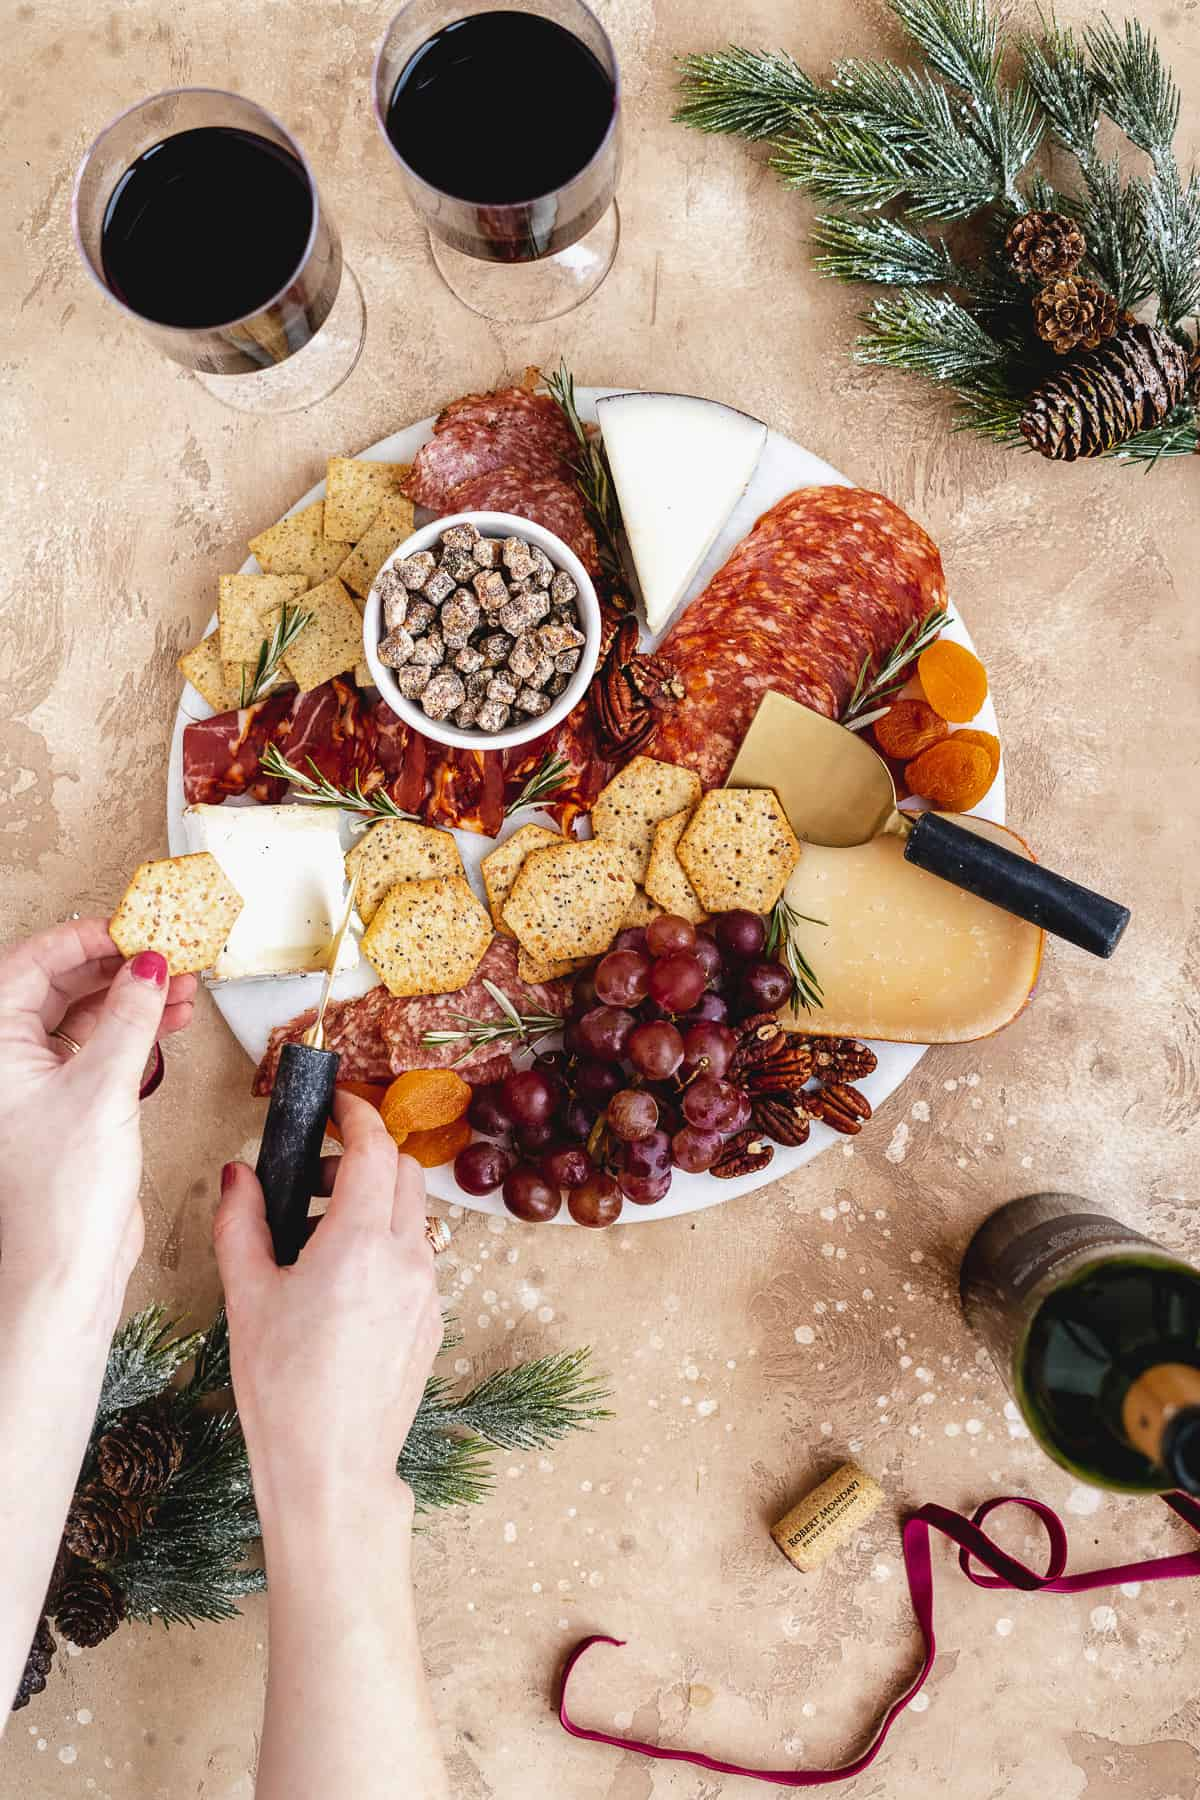 Overhead photo of round white marble slab filled with assorted meats, cheeses, nuts and fruits.  Two hands are holding a cracker and cutting some cheese to place on the cracker.